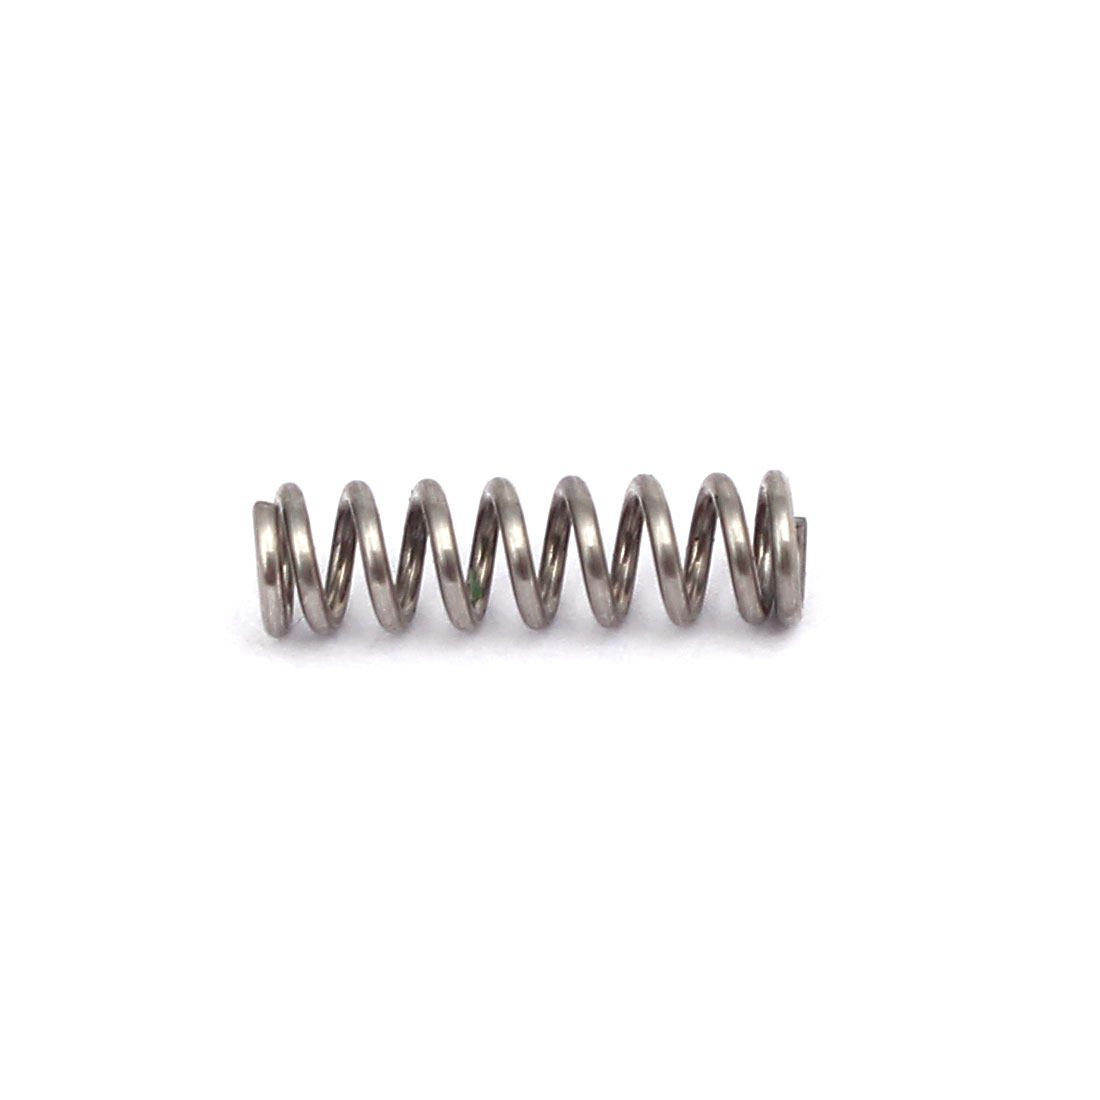 0.5mmx3mmx10mm 304 Stainless Steel Compression Springs Silver Tone 10pcs - image 1 of 3